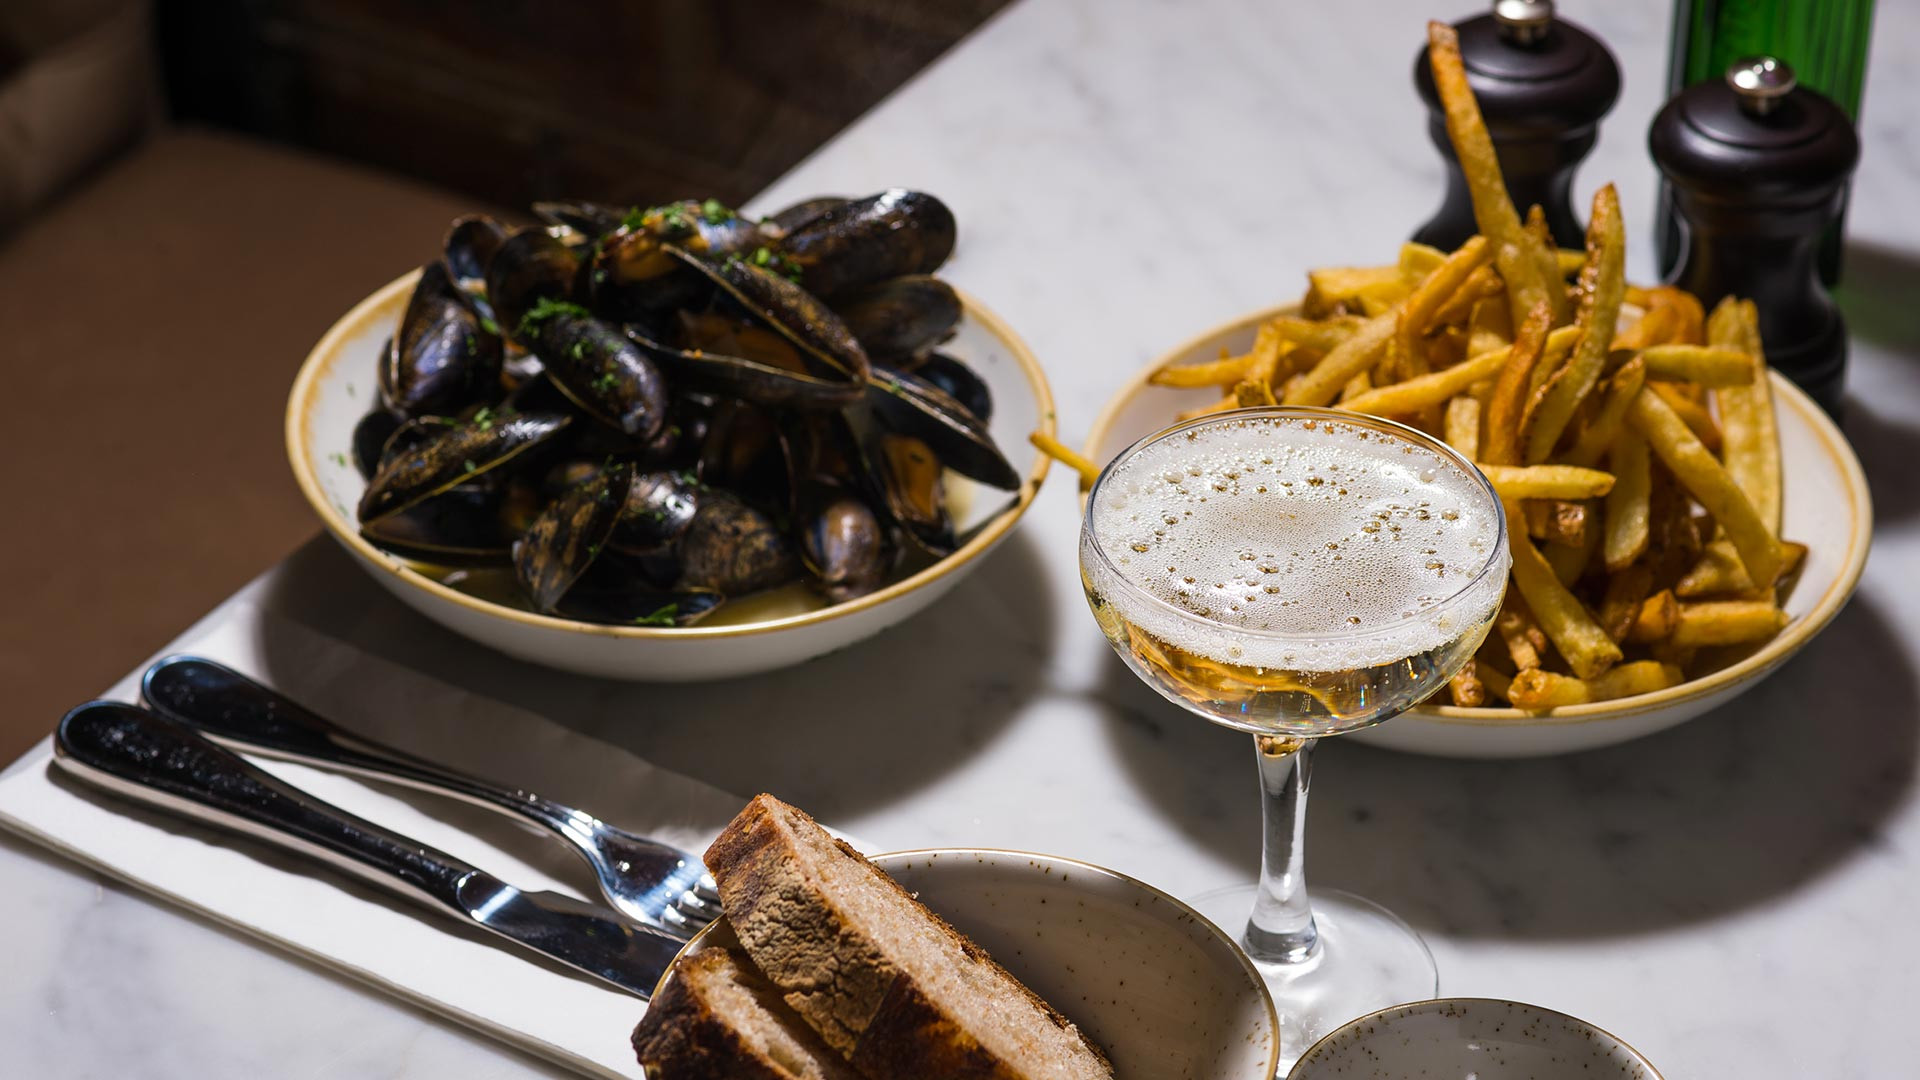 Petit Pois focuses on traditional French food in an intimate environment